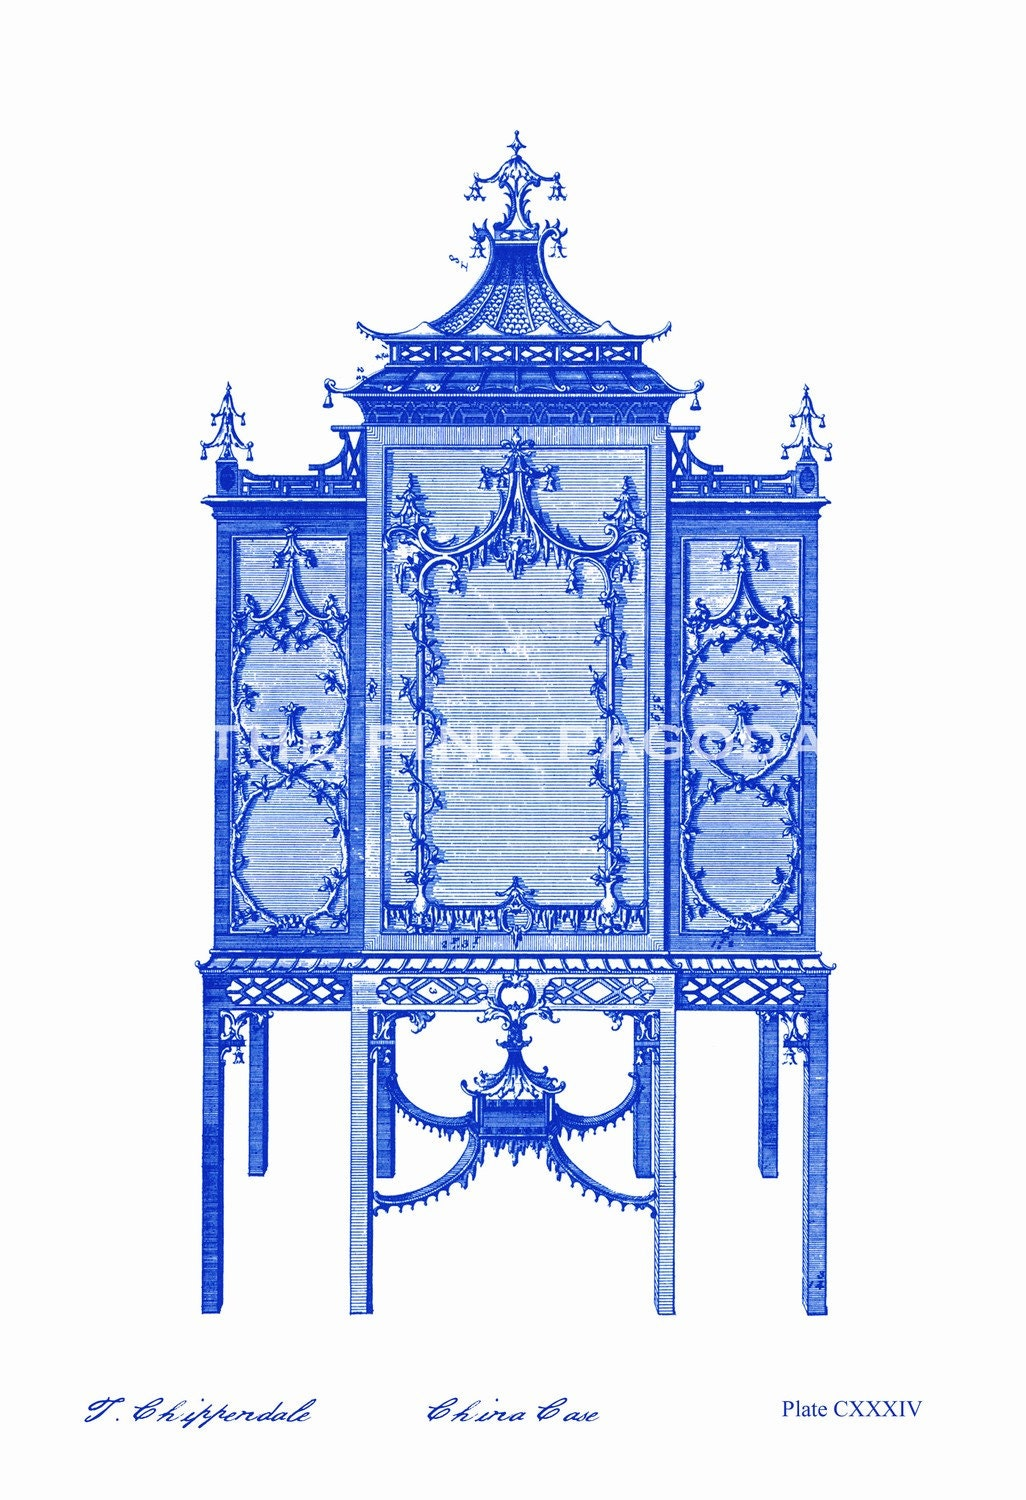 Indigo Navy Chinoiserie Chinese Chippendale Cabinet 13x19 Giclee - thepinkpagoda